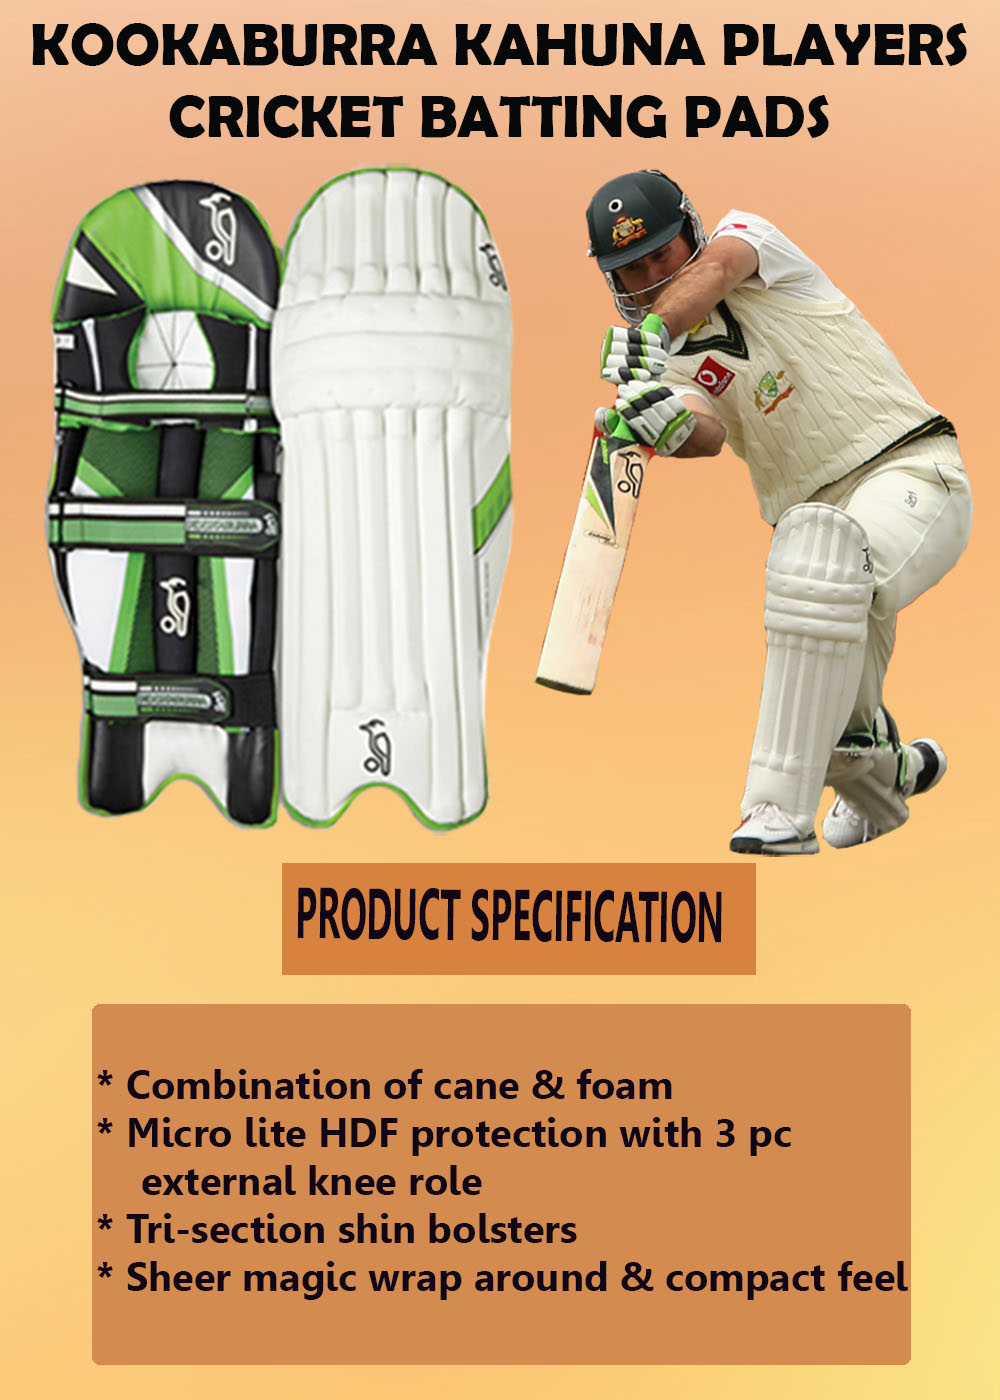 Kookaburra Kahuna Players cricket batting pads_1